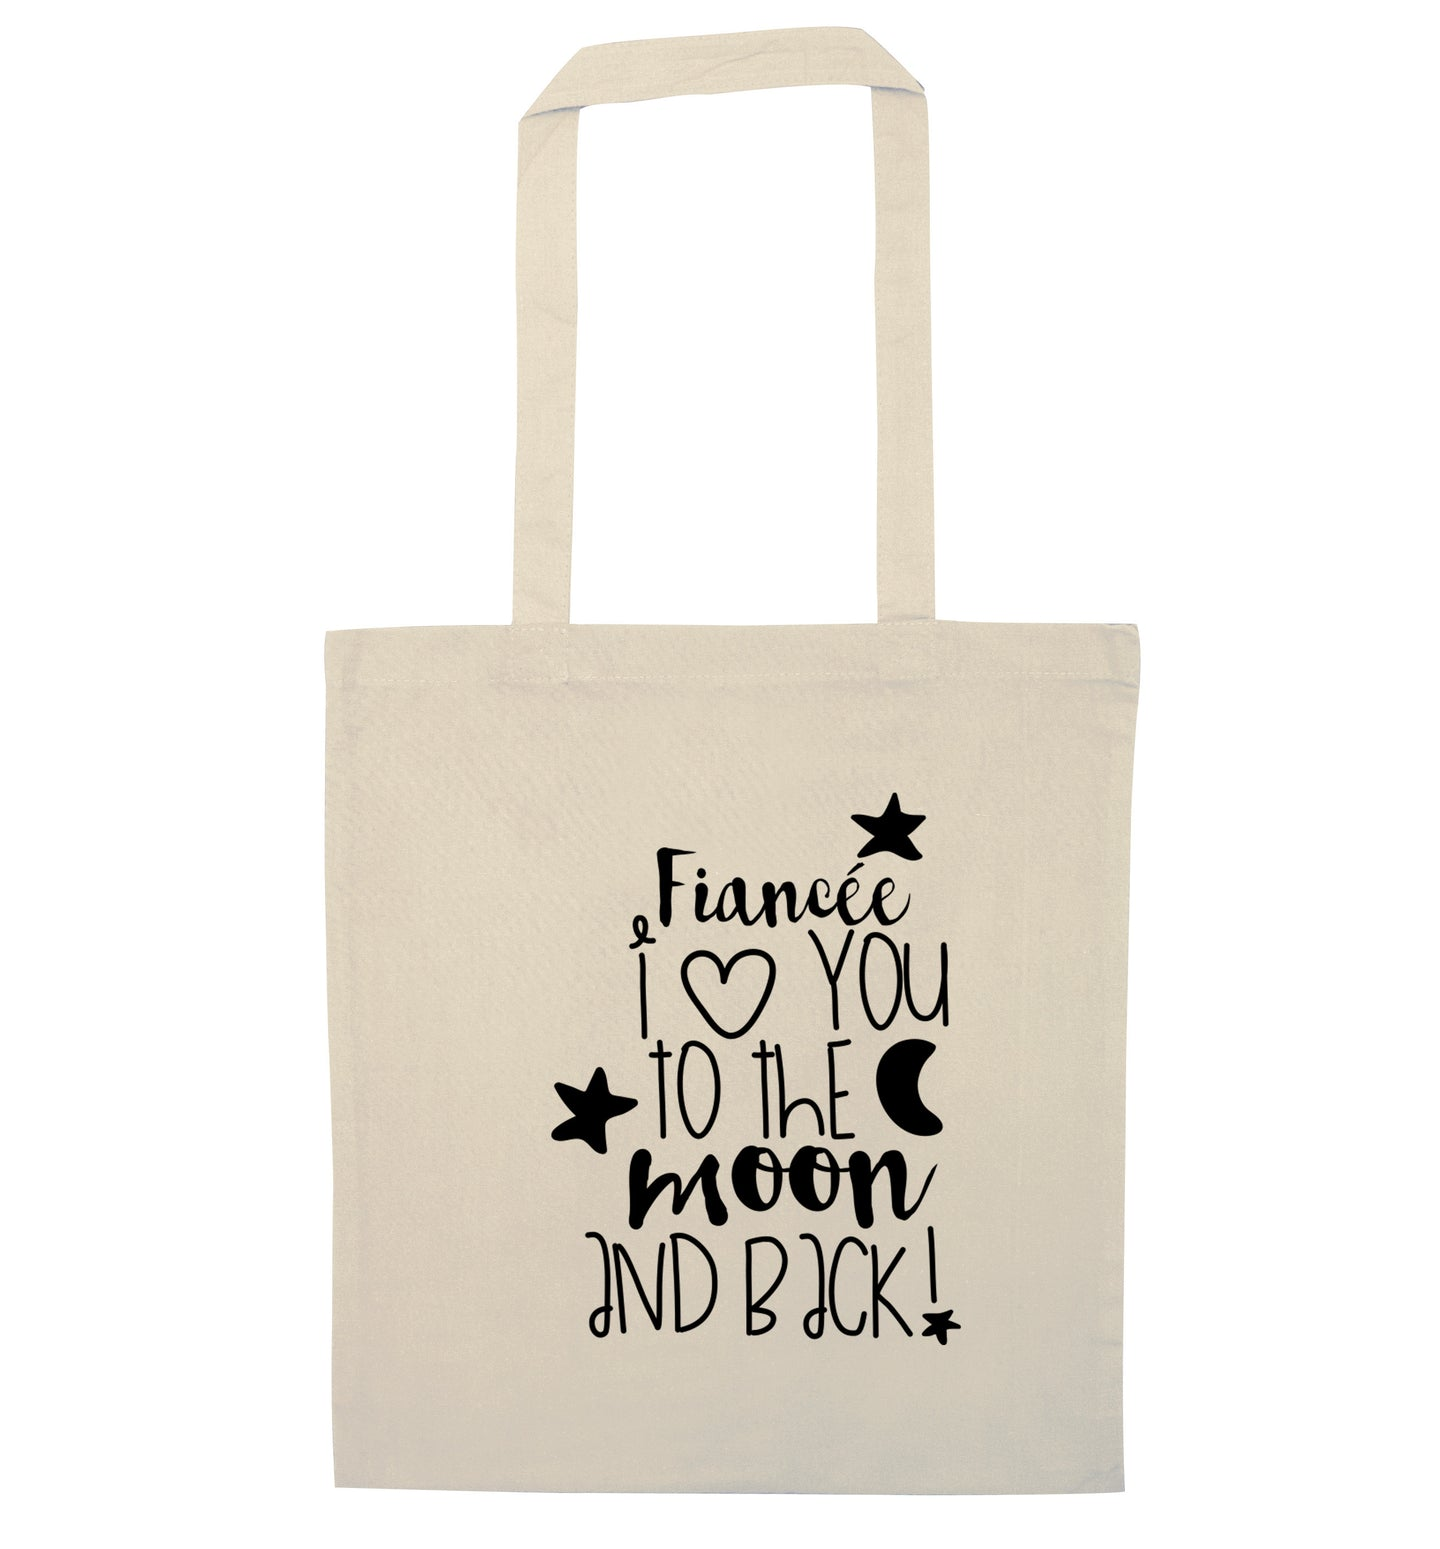 Fianc?_e I love you to the moon and back natural tote bag